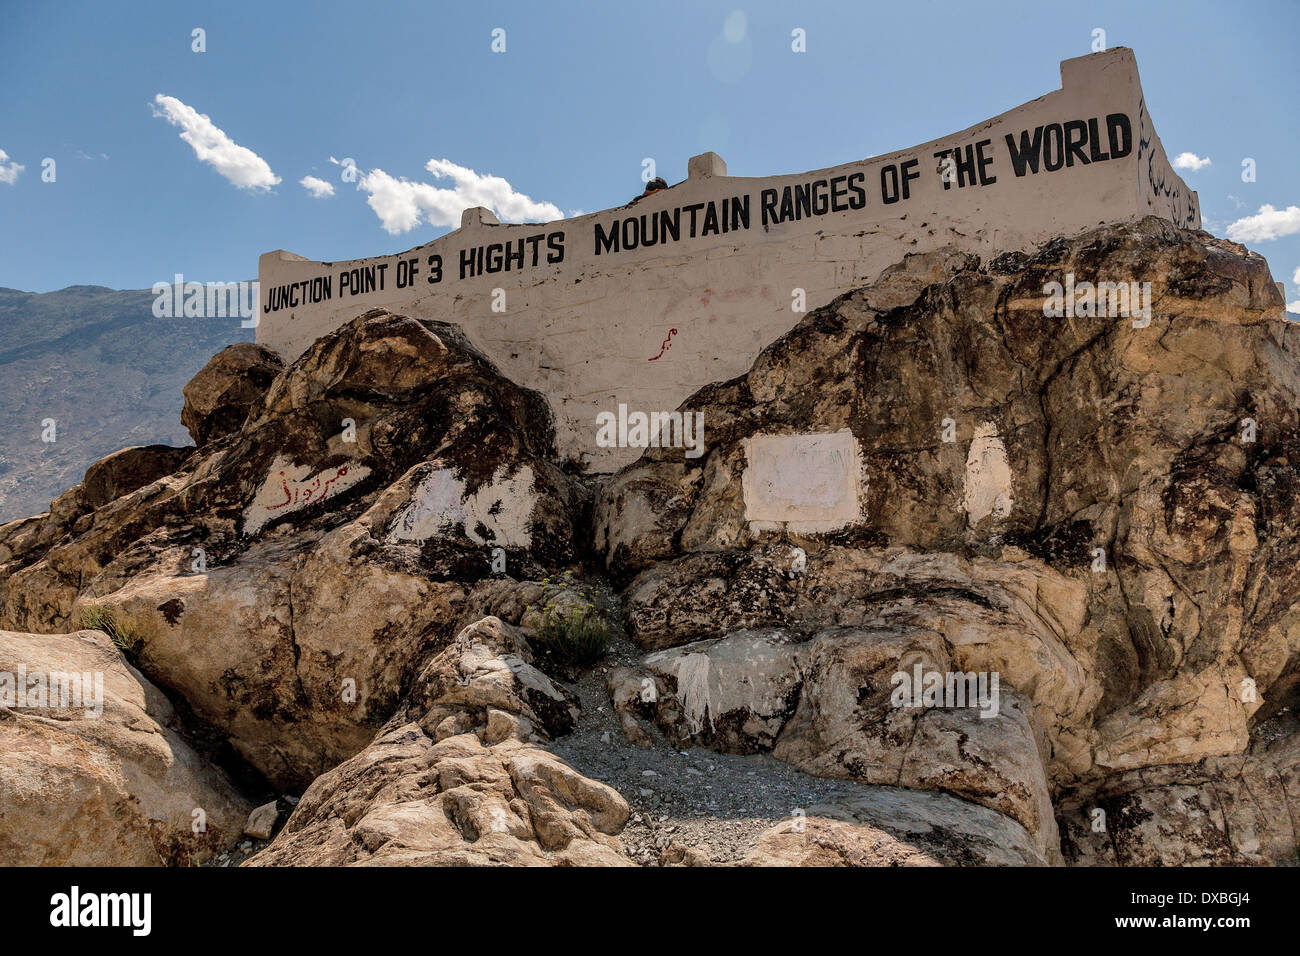 Junction Point of 3 Highest Mountain ranges of the world - Stock Image